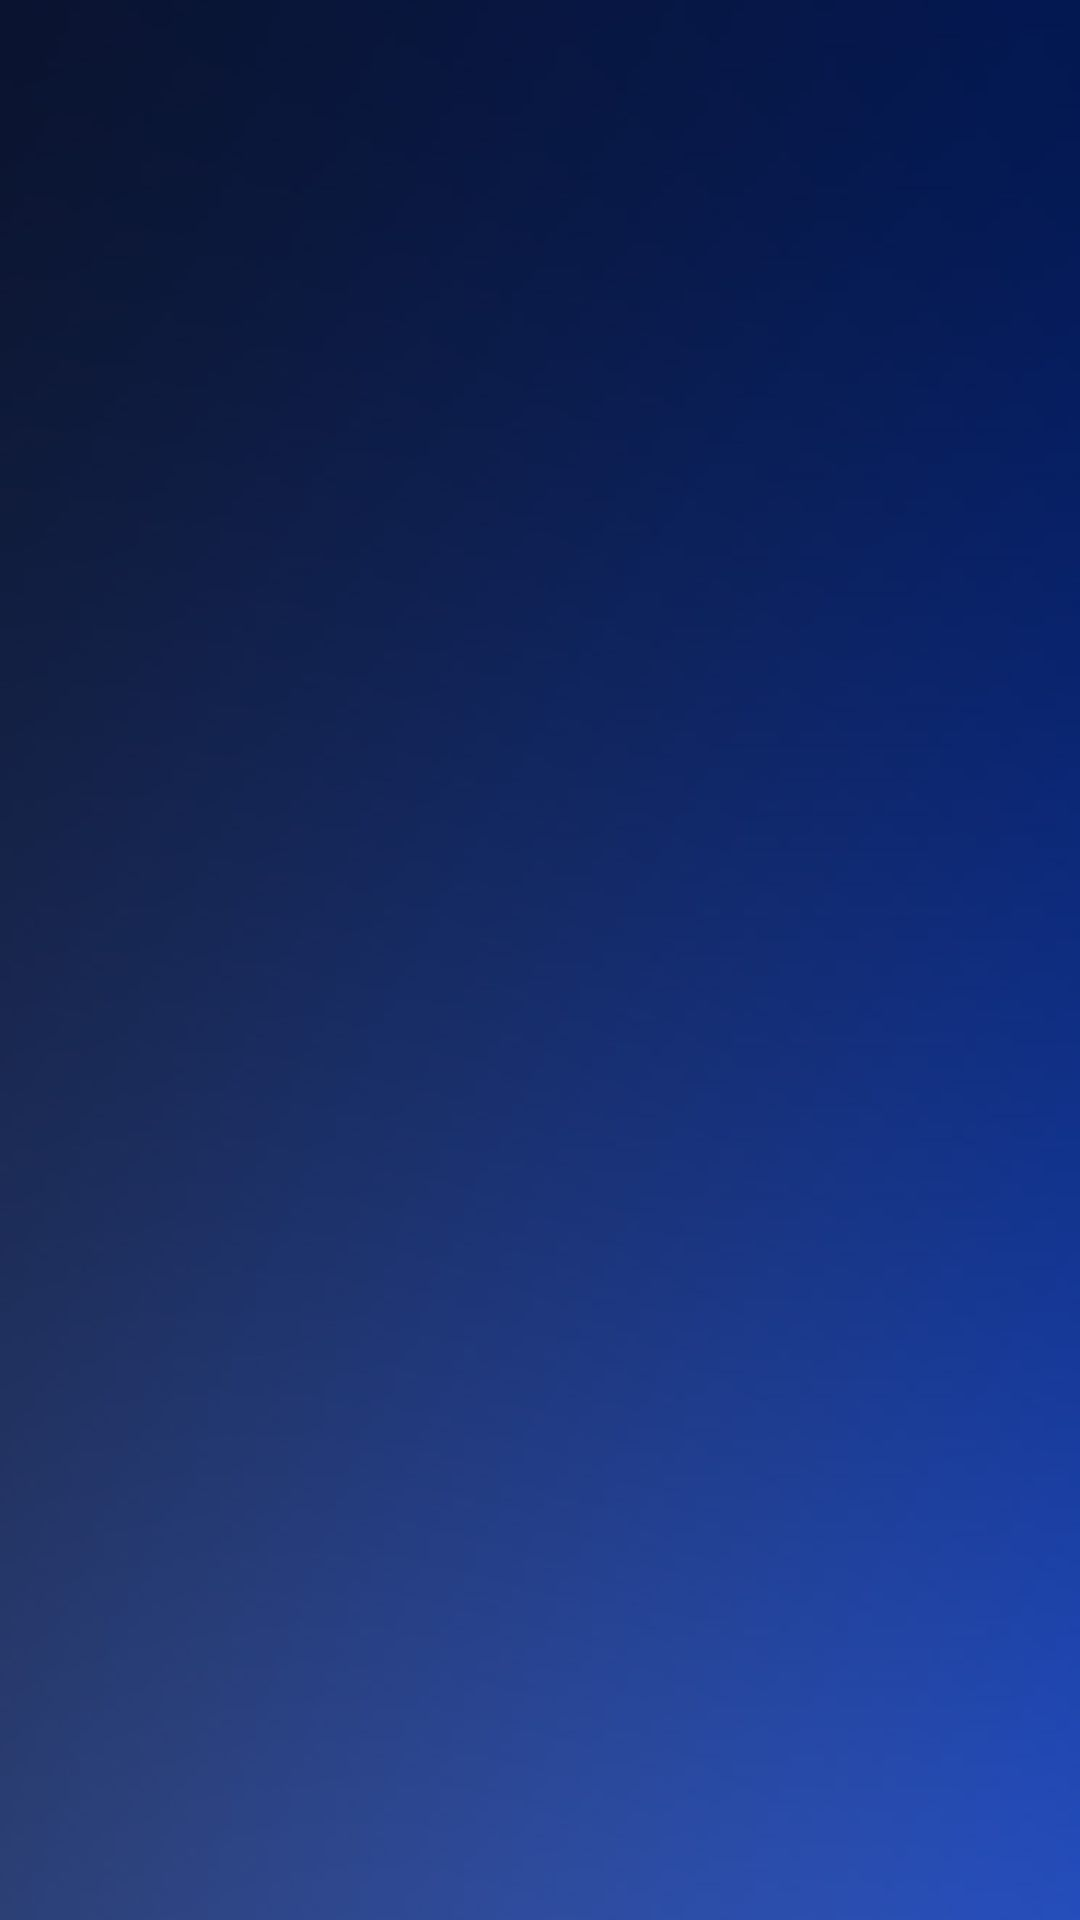 Pure Dark Blue Ocean Gradation Blur Background Iphone  Wallpaper